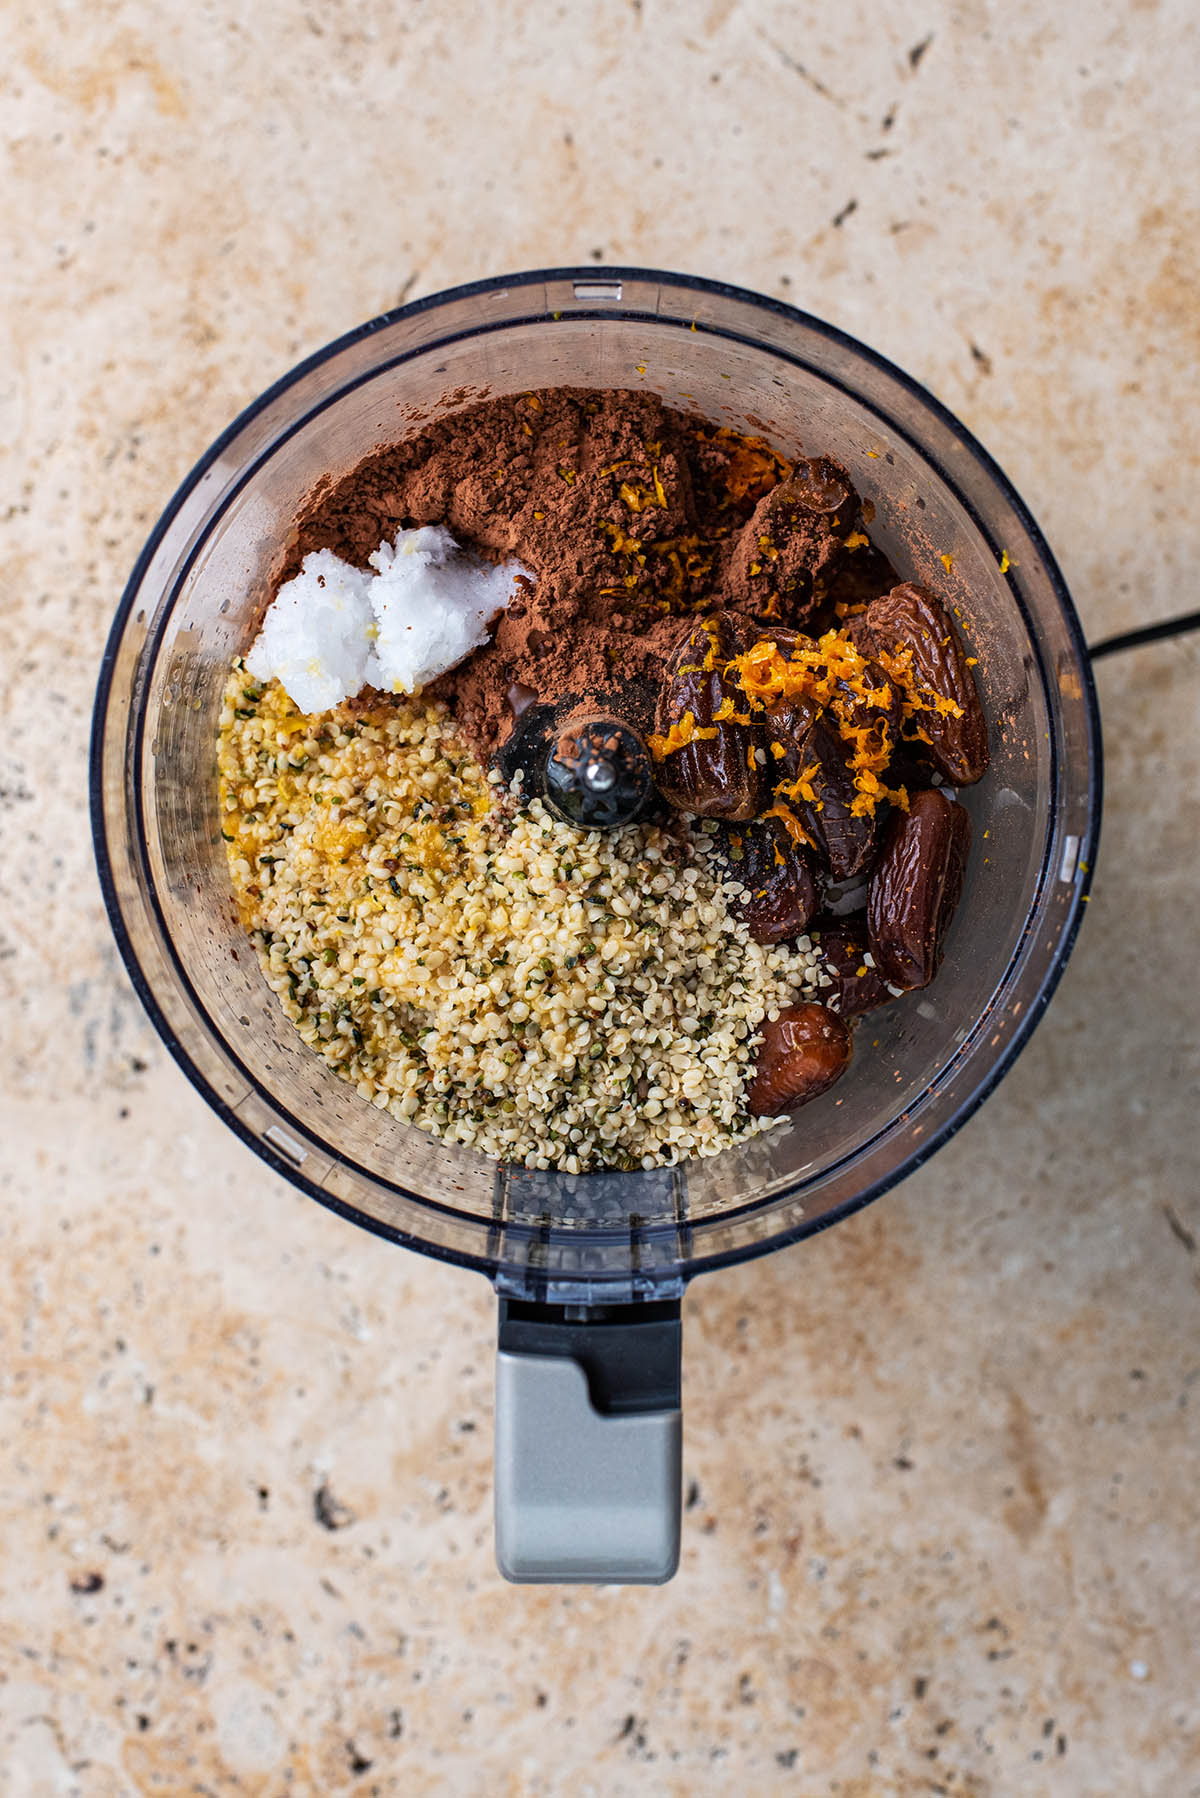 Ingredients added to a food processor.